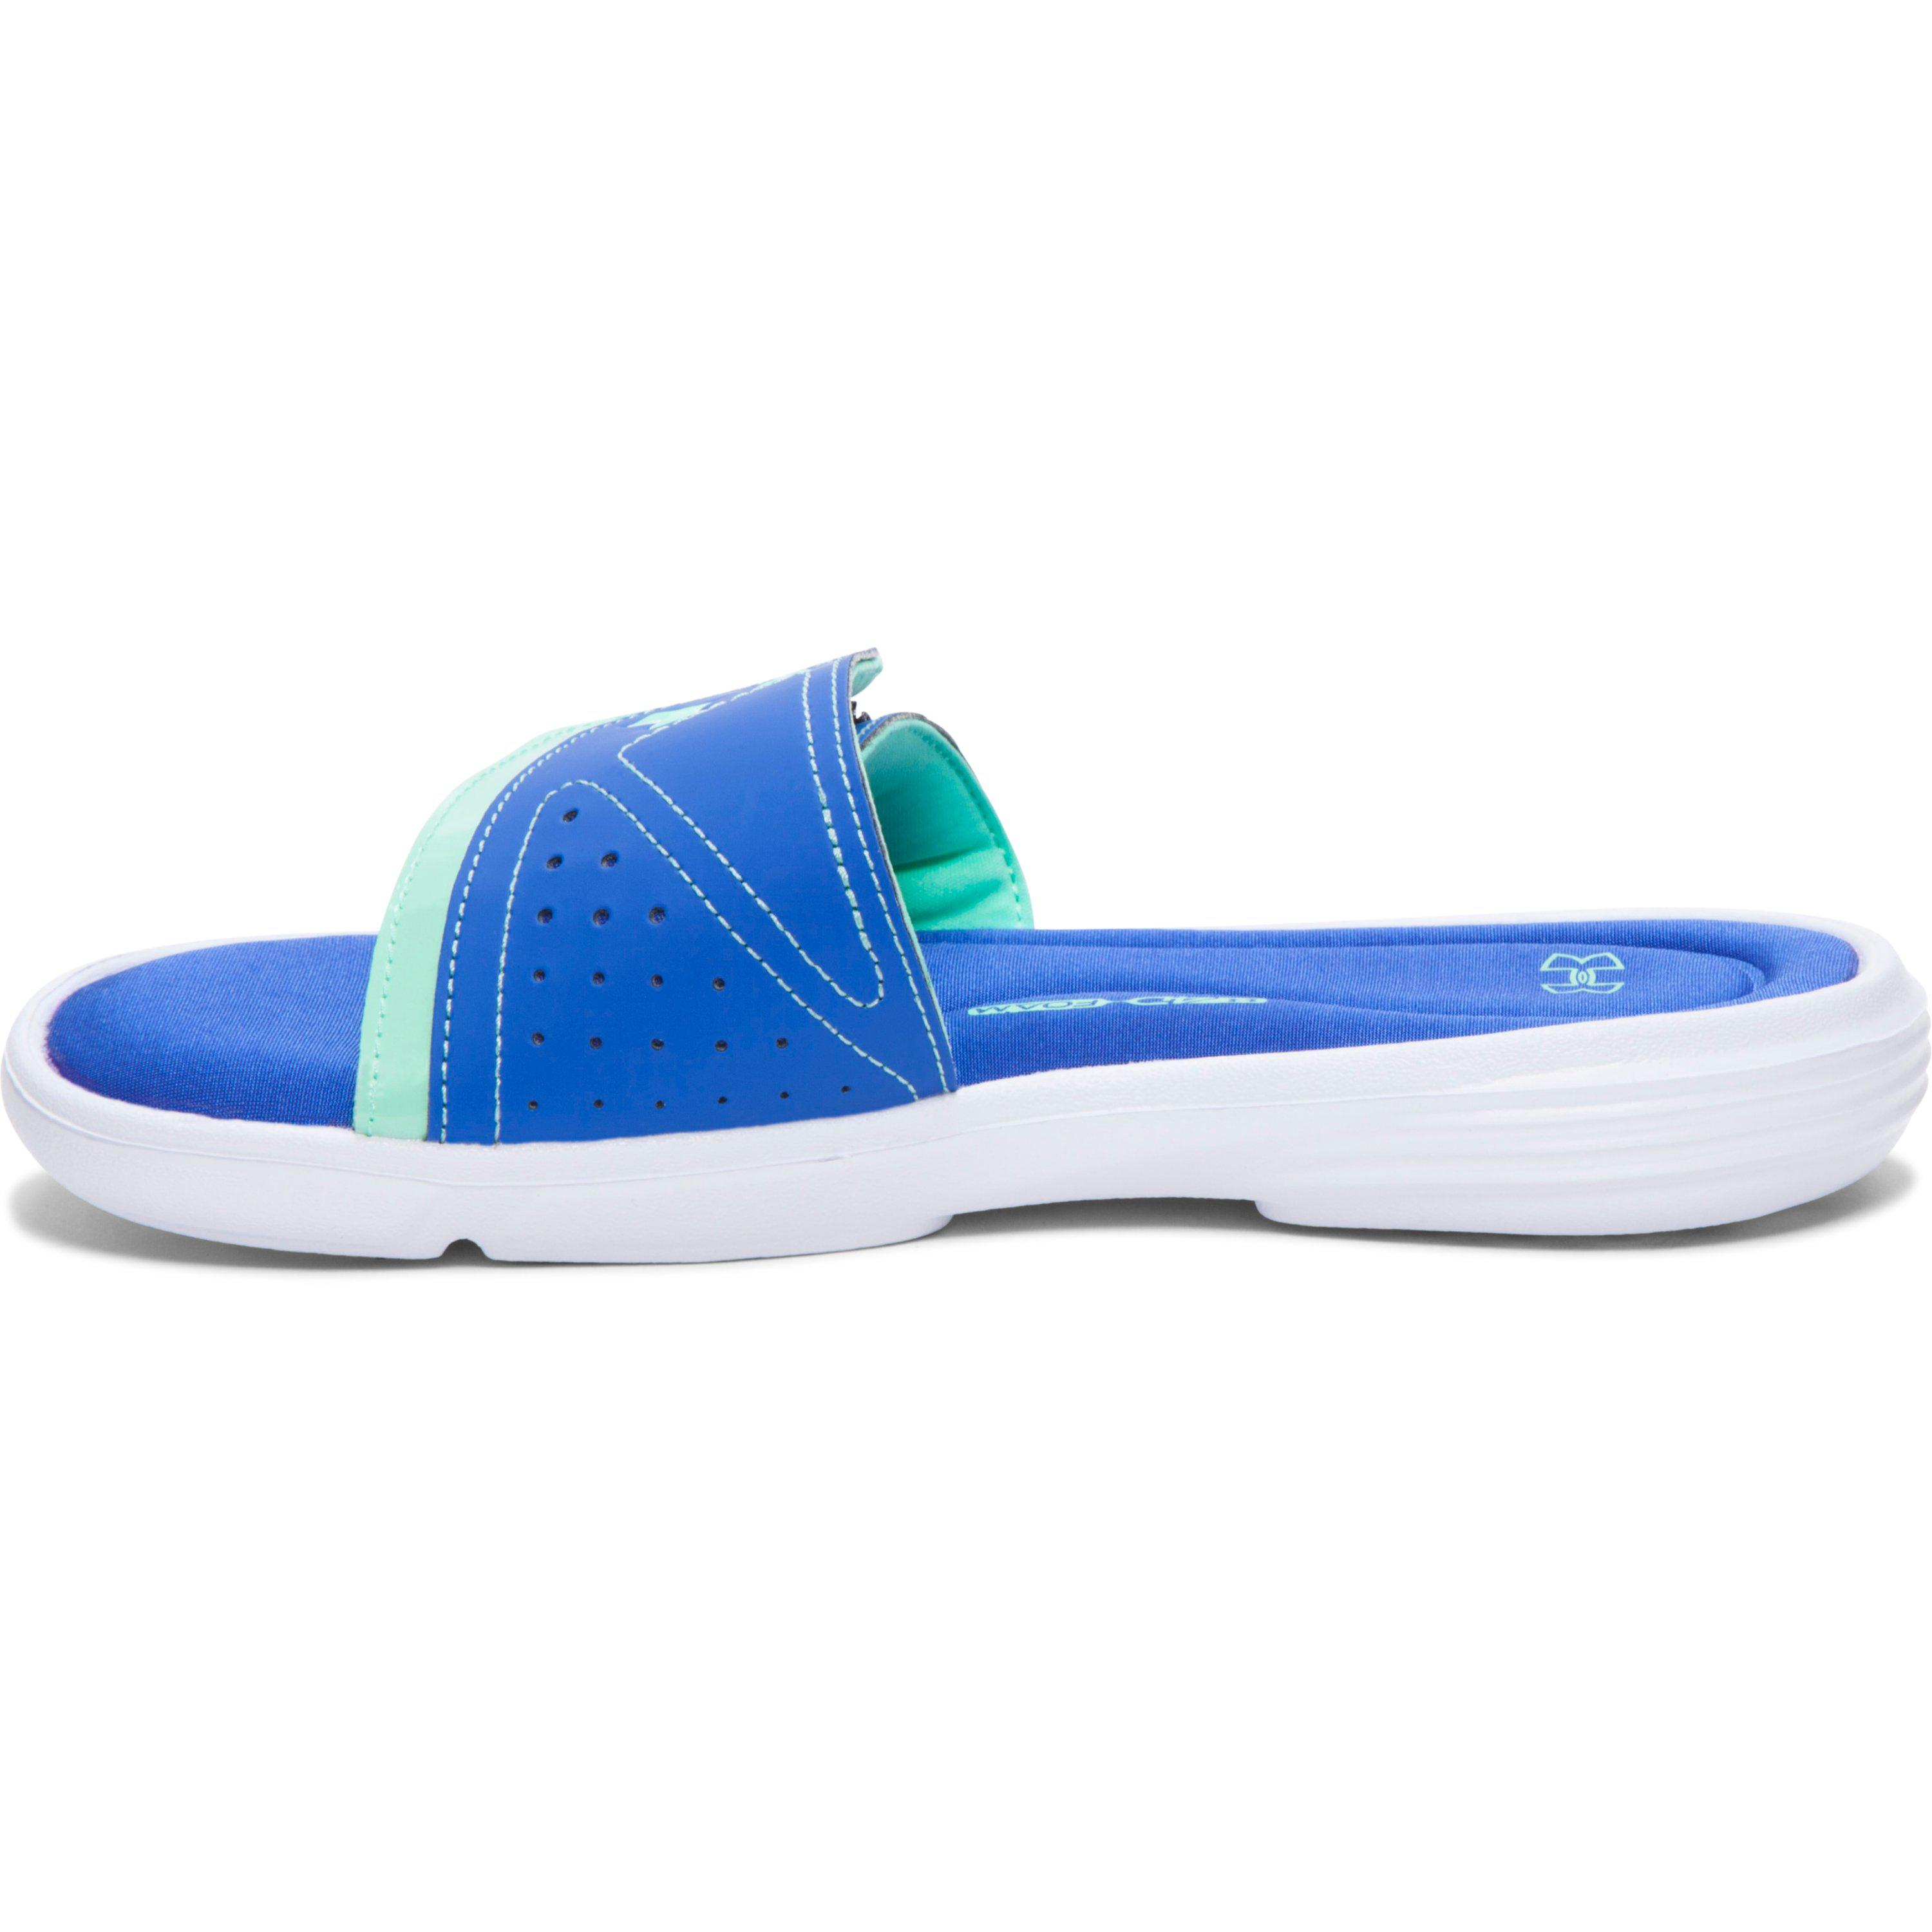 9208b7c0f Lyst - Under Armour Women s Ua Ignite Vii Slides